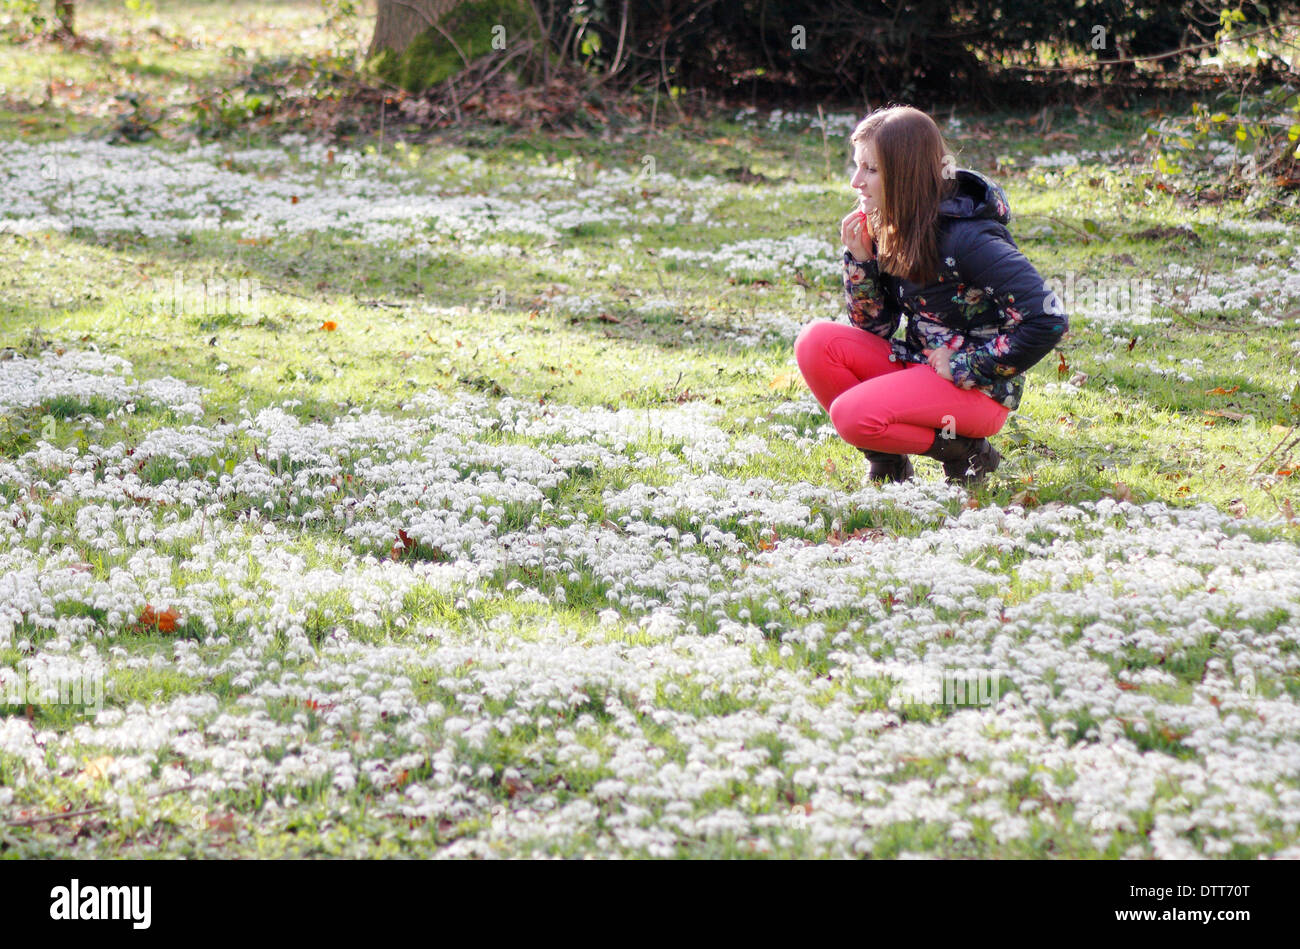 Young woman, early 20's, admiring snowdrops (Galanthus Nivalis) in deciduous wood at Hodsock Priory, Nottinghamshire, England,UK - Stock Image